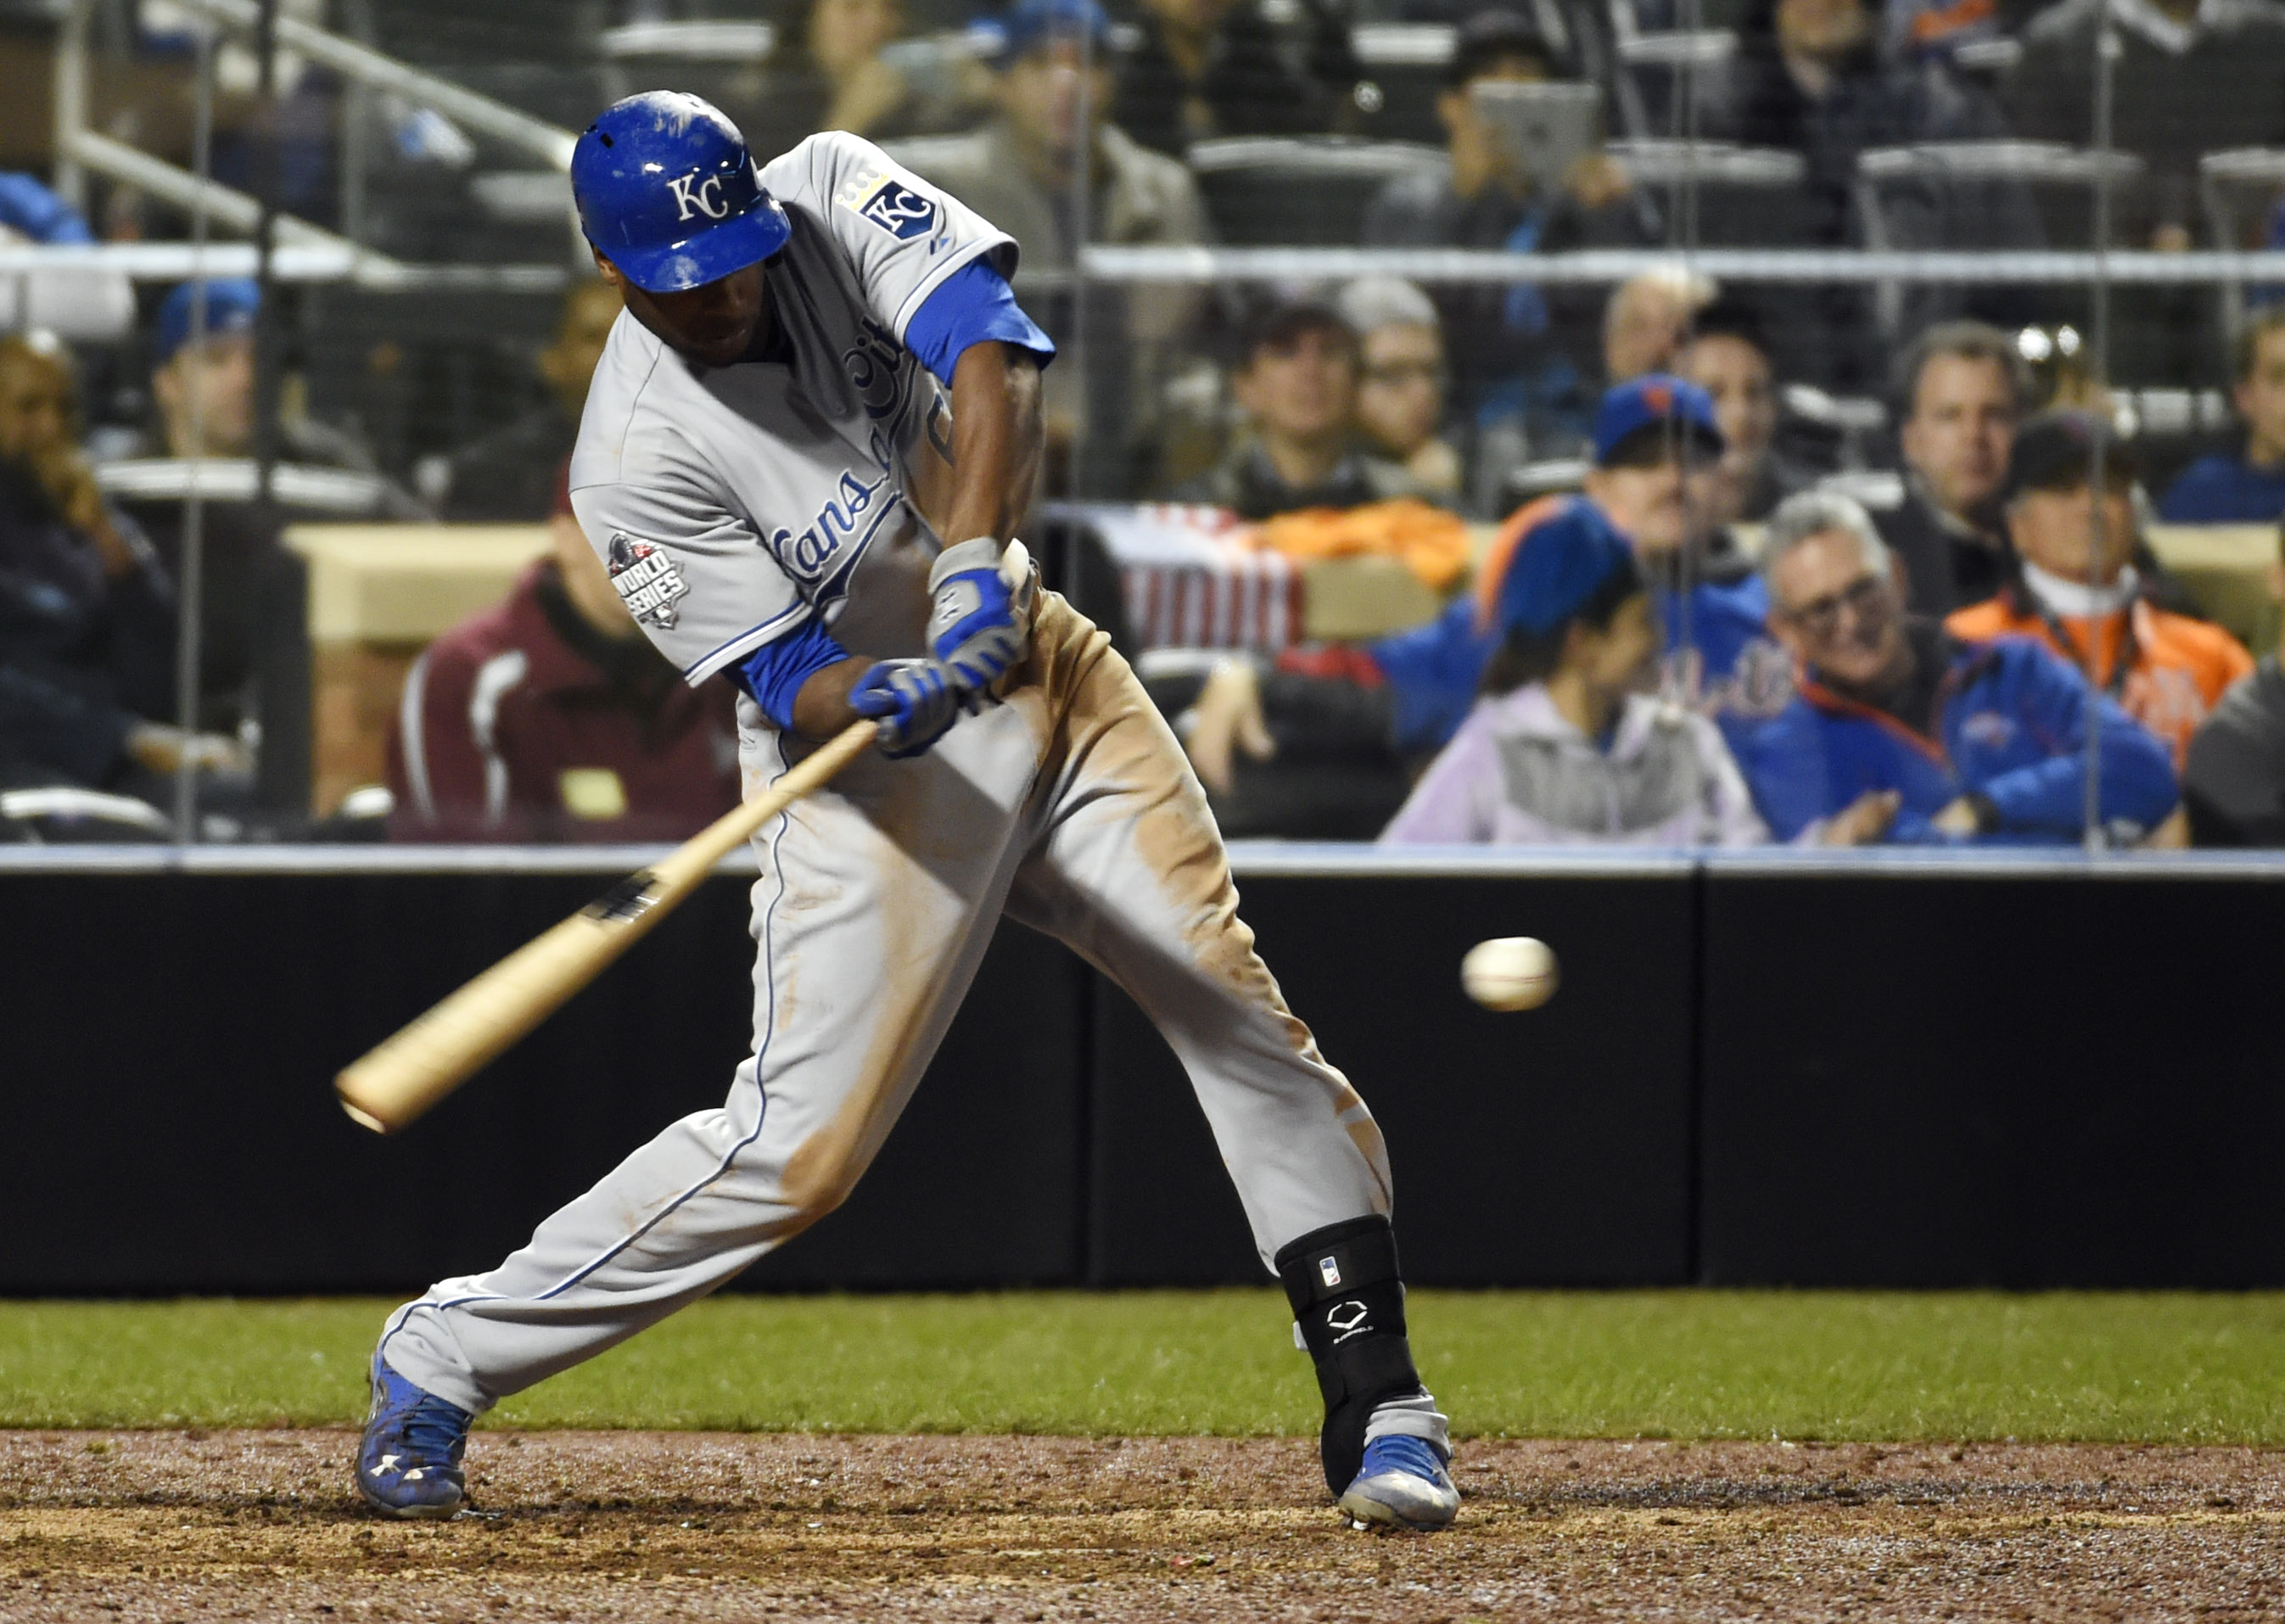 Lorenzo Cain's breakout gave both the Royals and many fantasy owners a championship. What's in store for 2016 for this team?